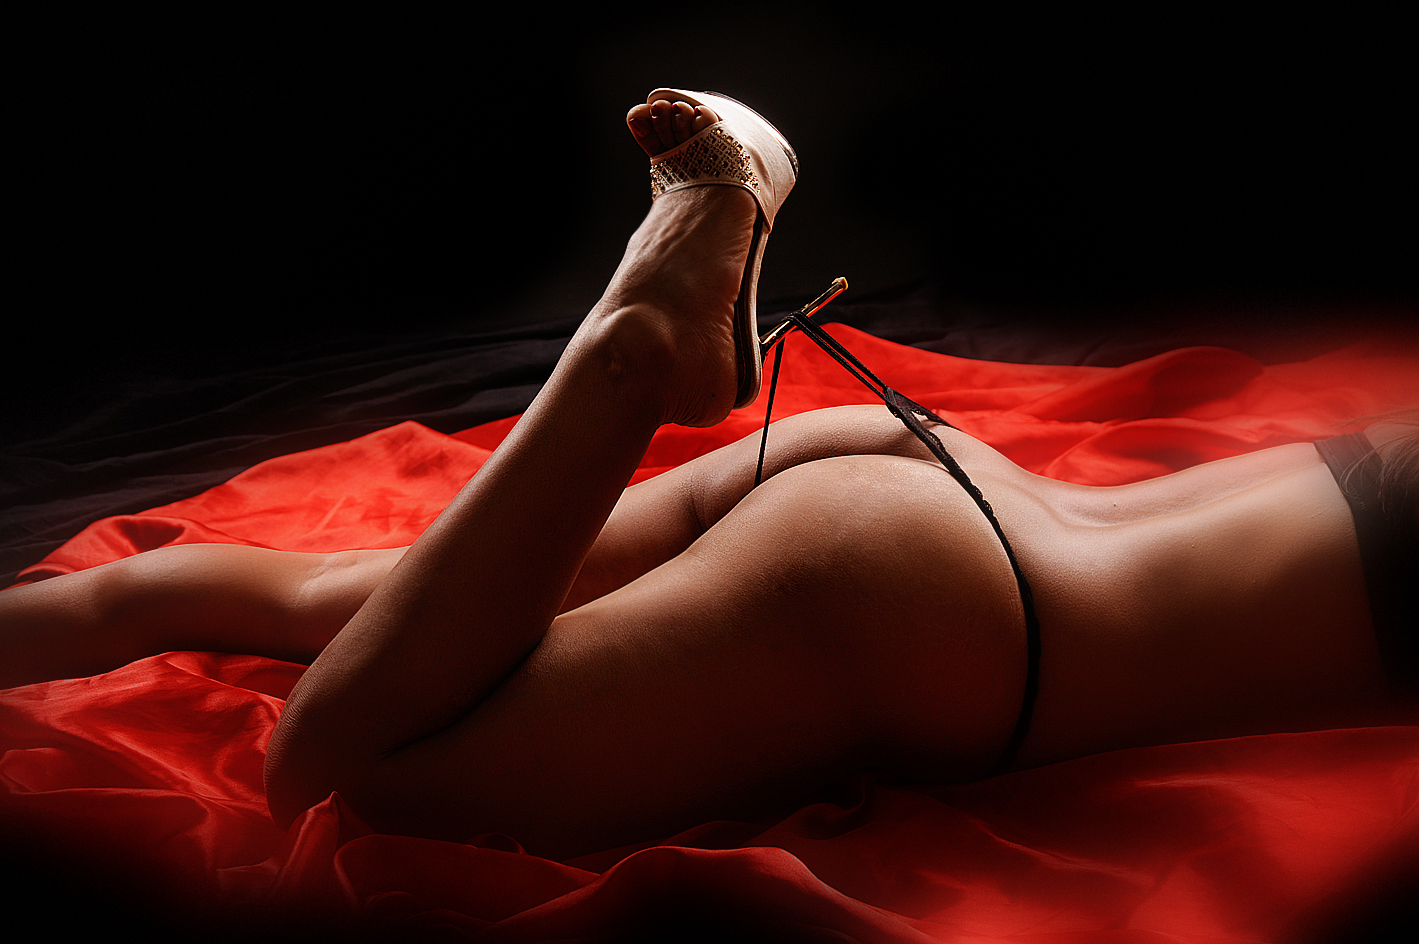 sm in dresden erotik massage koeln